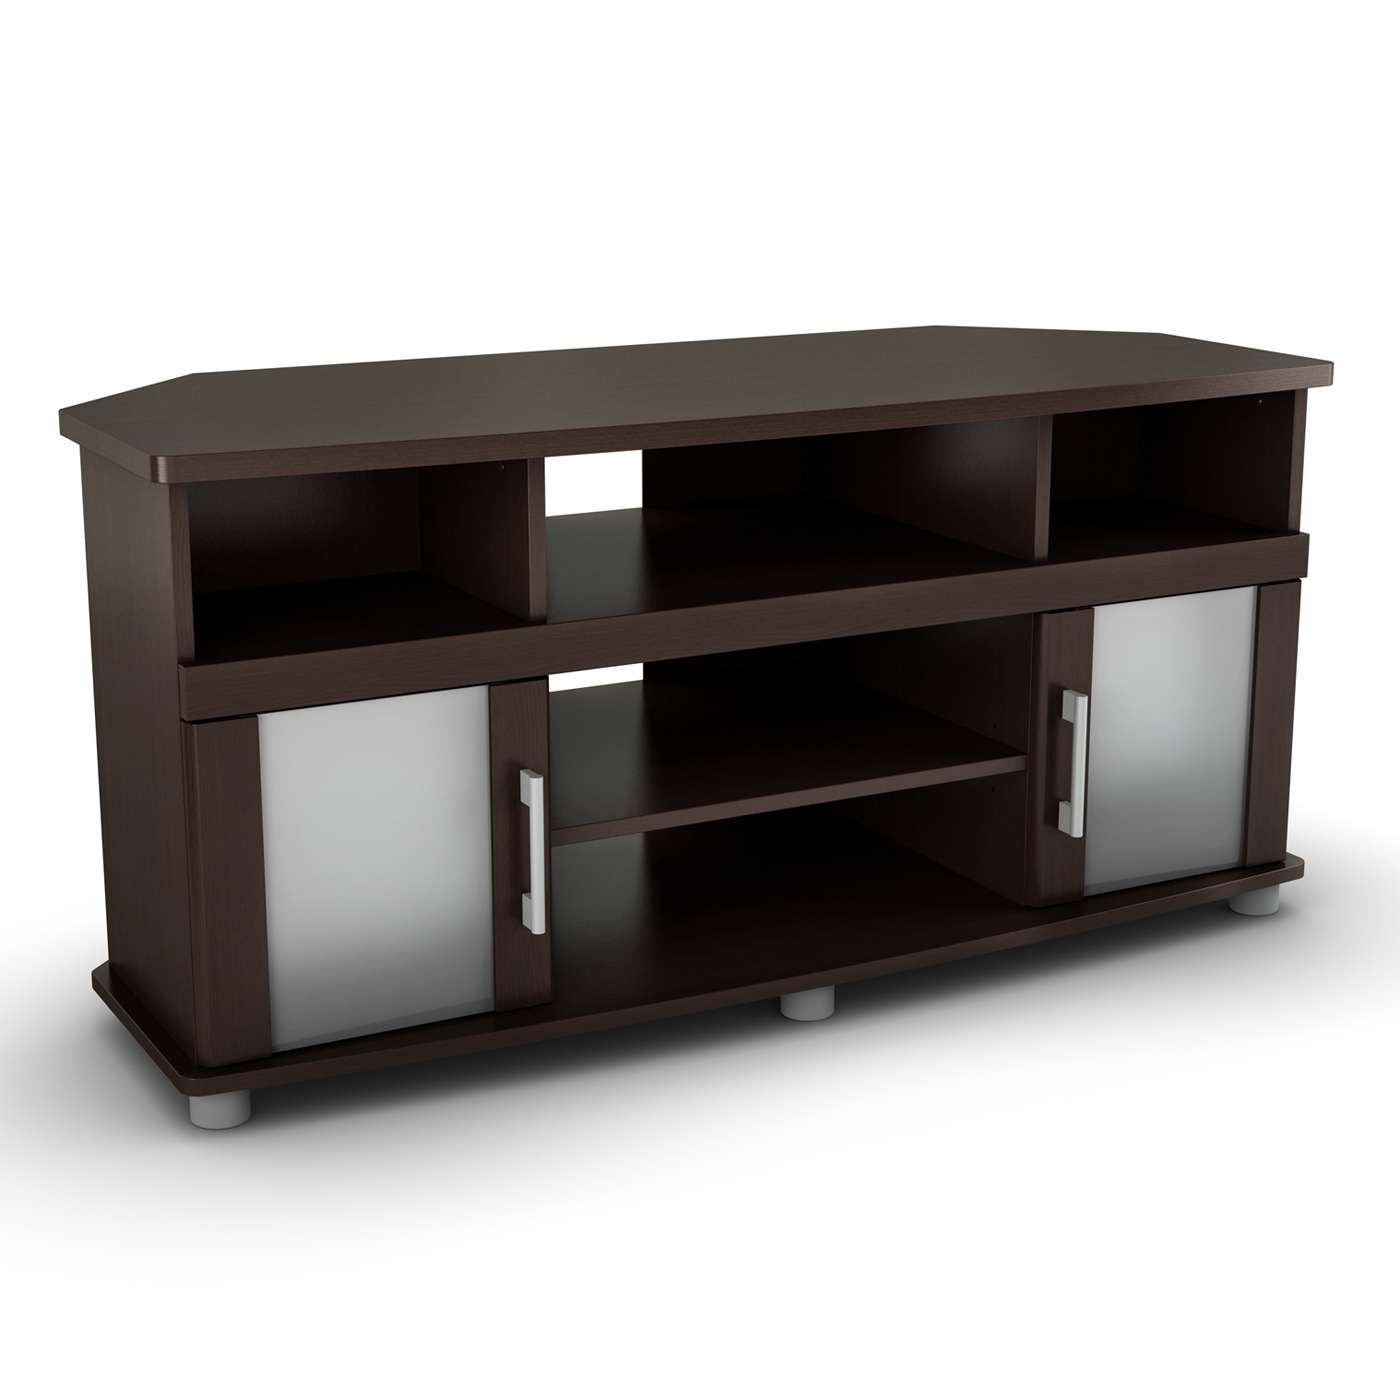 Tv Stands – Corner, Fireplace & More | Lowe's Canada With Regard To Low Corner Tv Stands (View 14 of 15)